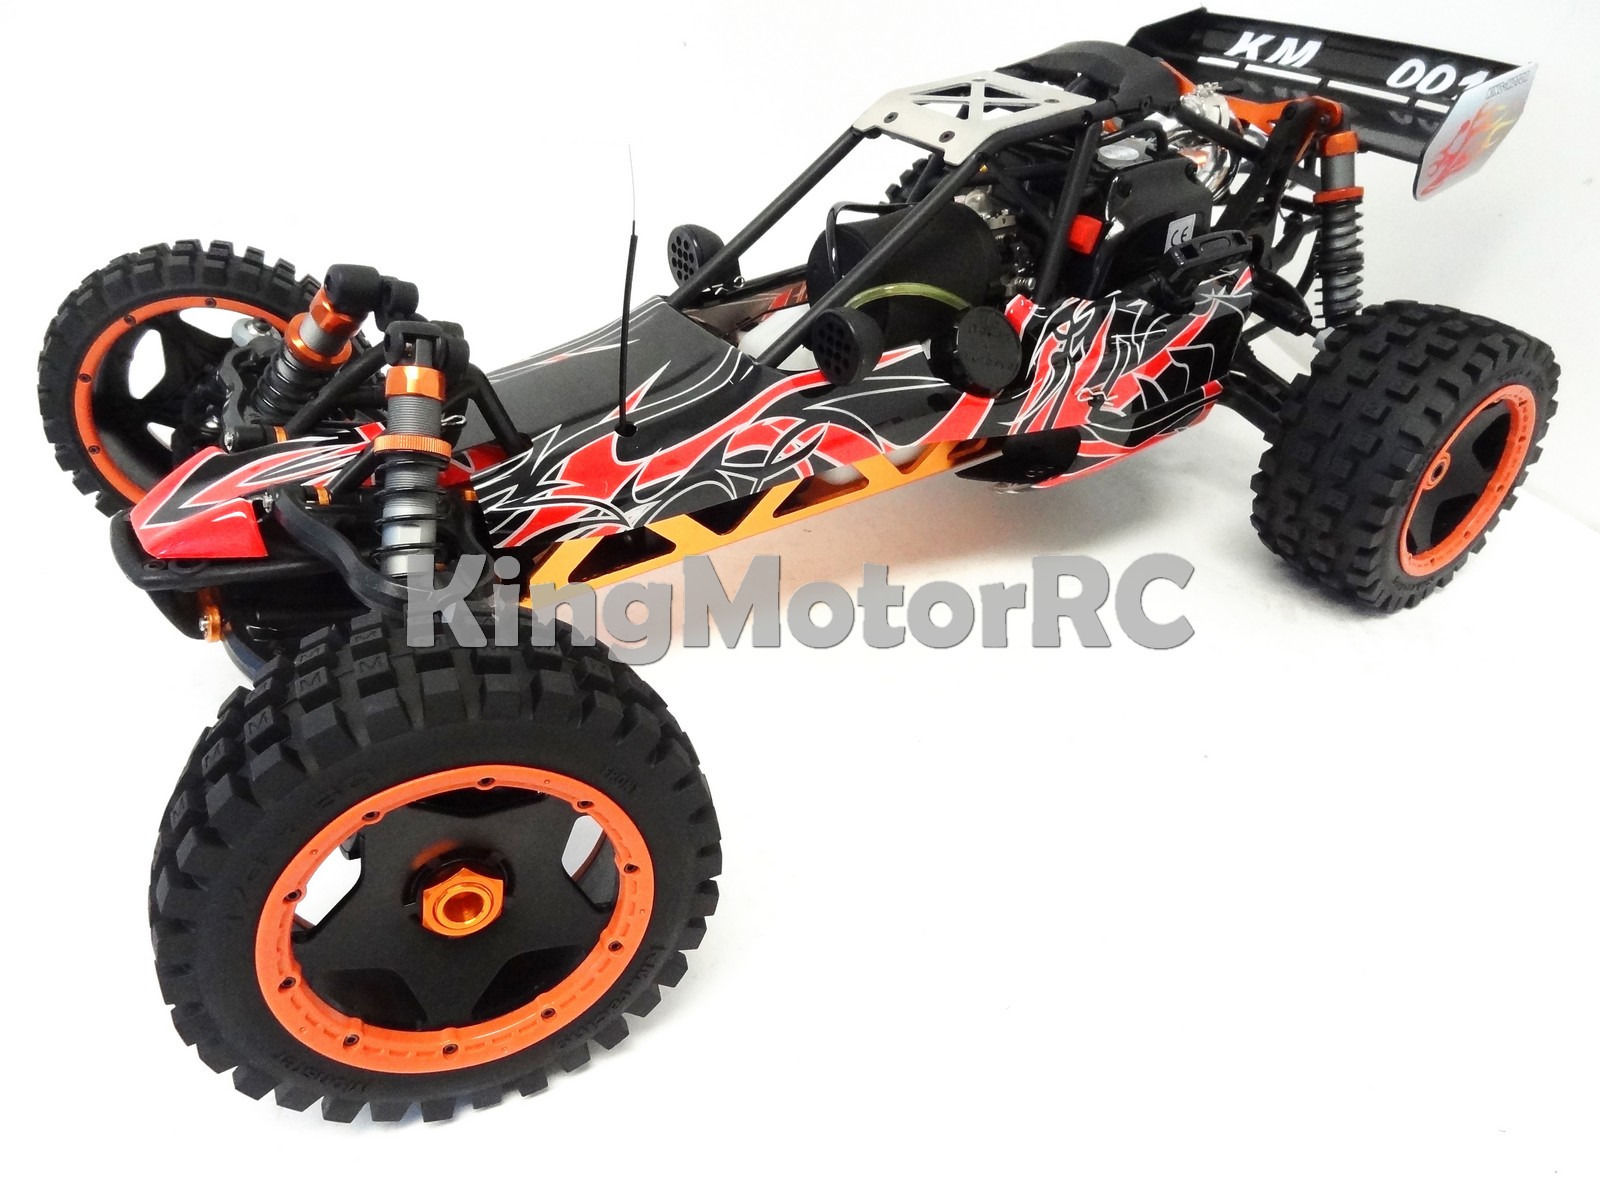 1 5 King Motor RC KSRC 001 30 5cc Gas Petrol HPI Baja 5B Buggy patible Rovan in Parts & Accessories from Toys & Hobbies on Aliexpress